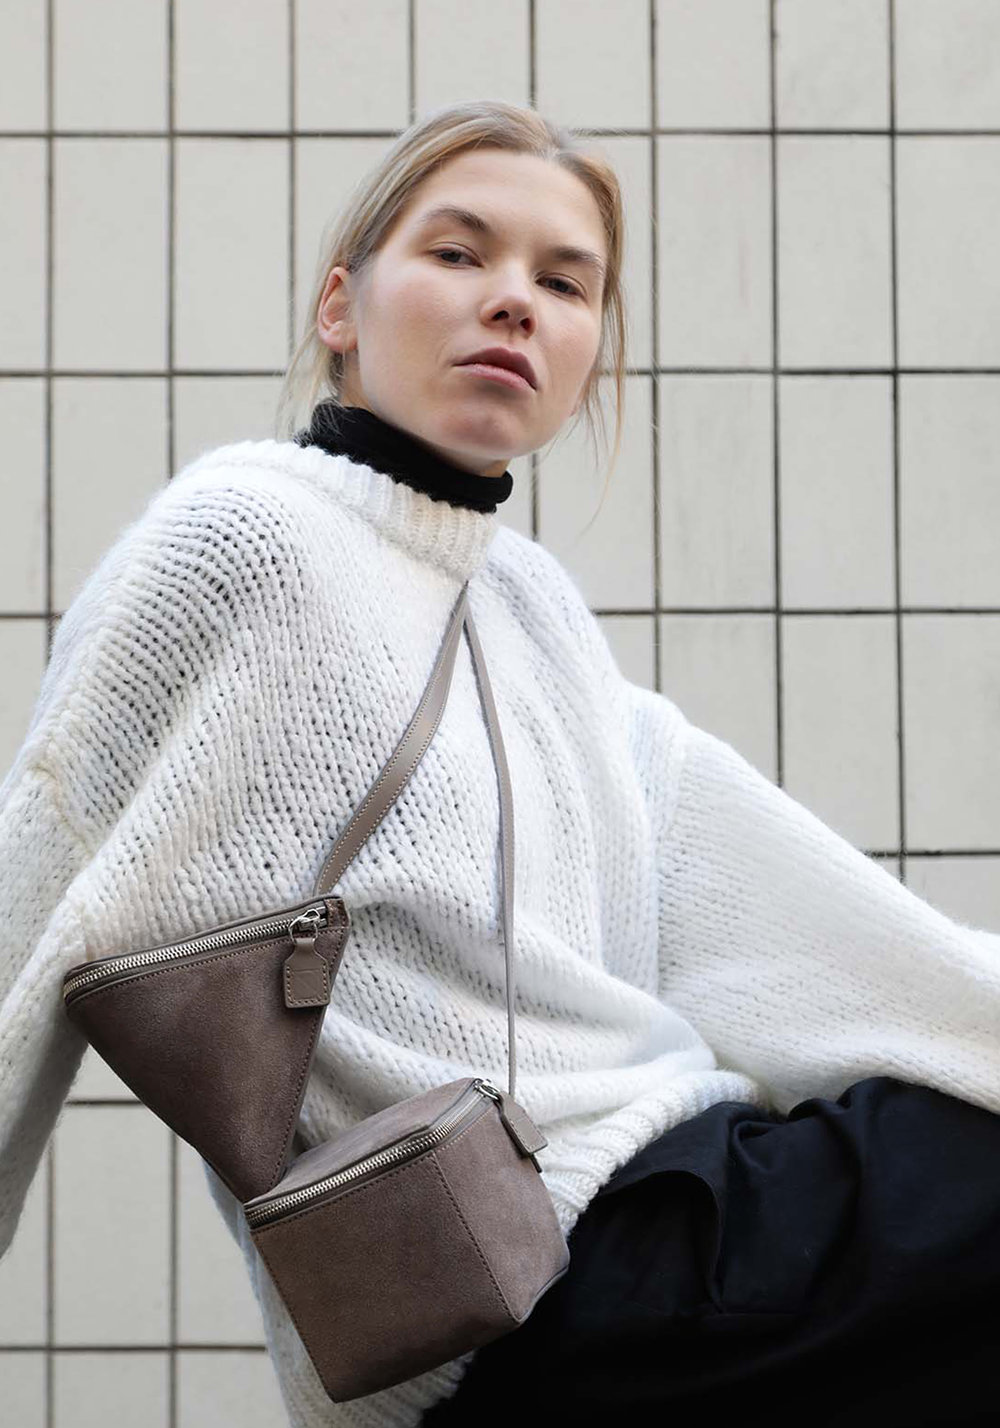 BAURAIN FW18 pythagore and cubox crossbody bags